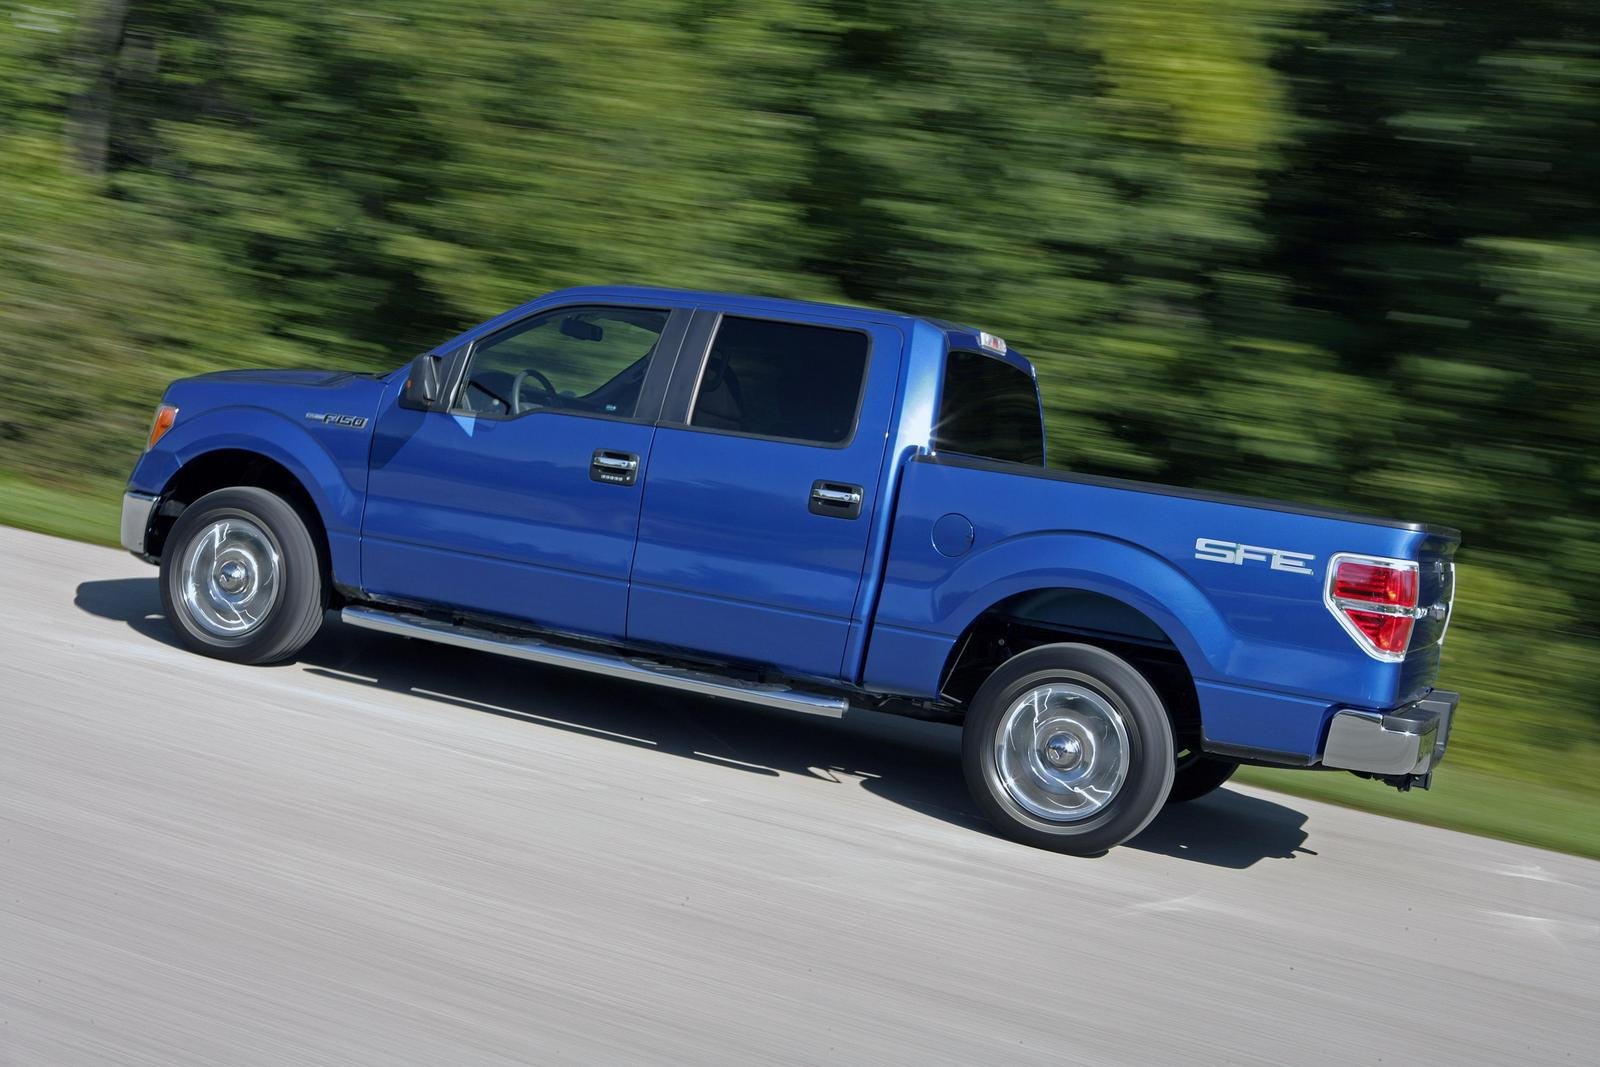 2009 ford f150 on sale in october fuel economy improved by 8 picture 264300 car news top. Black Bedroom Furniture Sets. Home Design Ideas